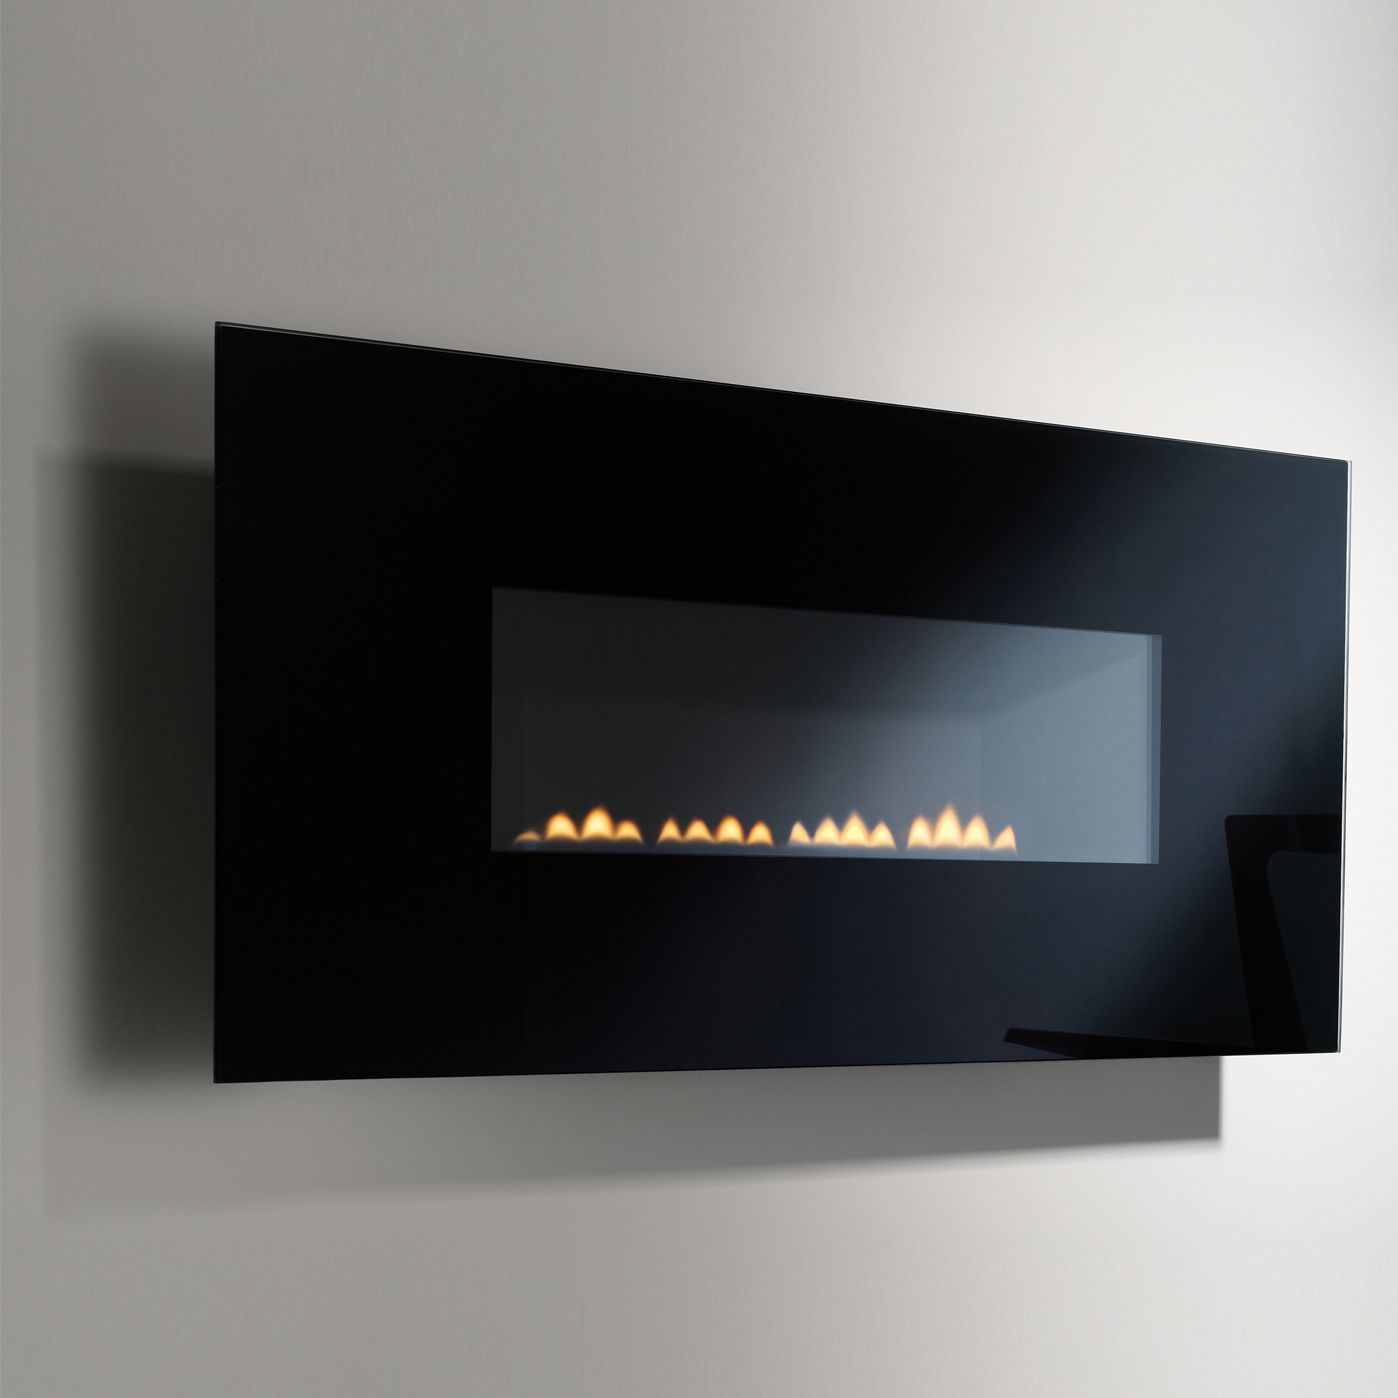 Focal Point Midnight Black Manual Control Wall Hung Gas